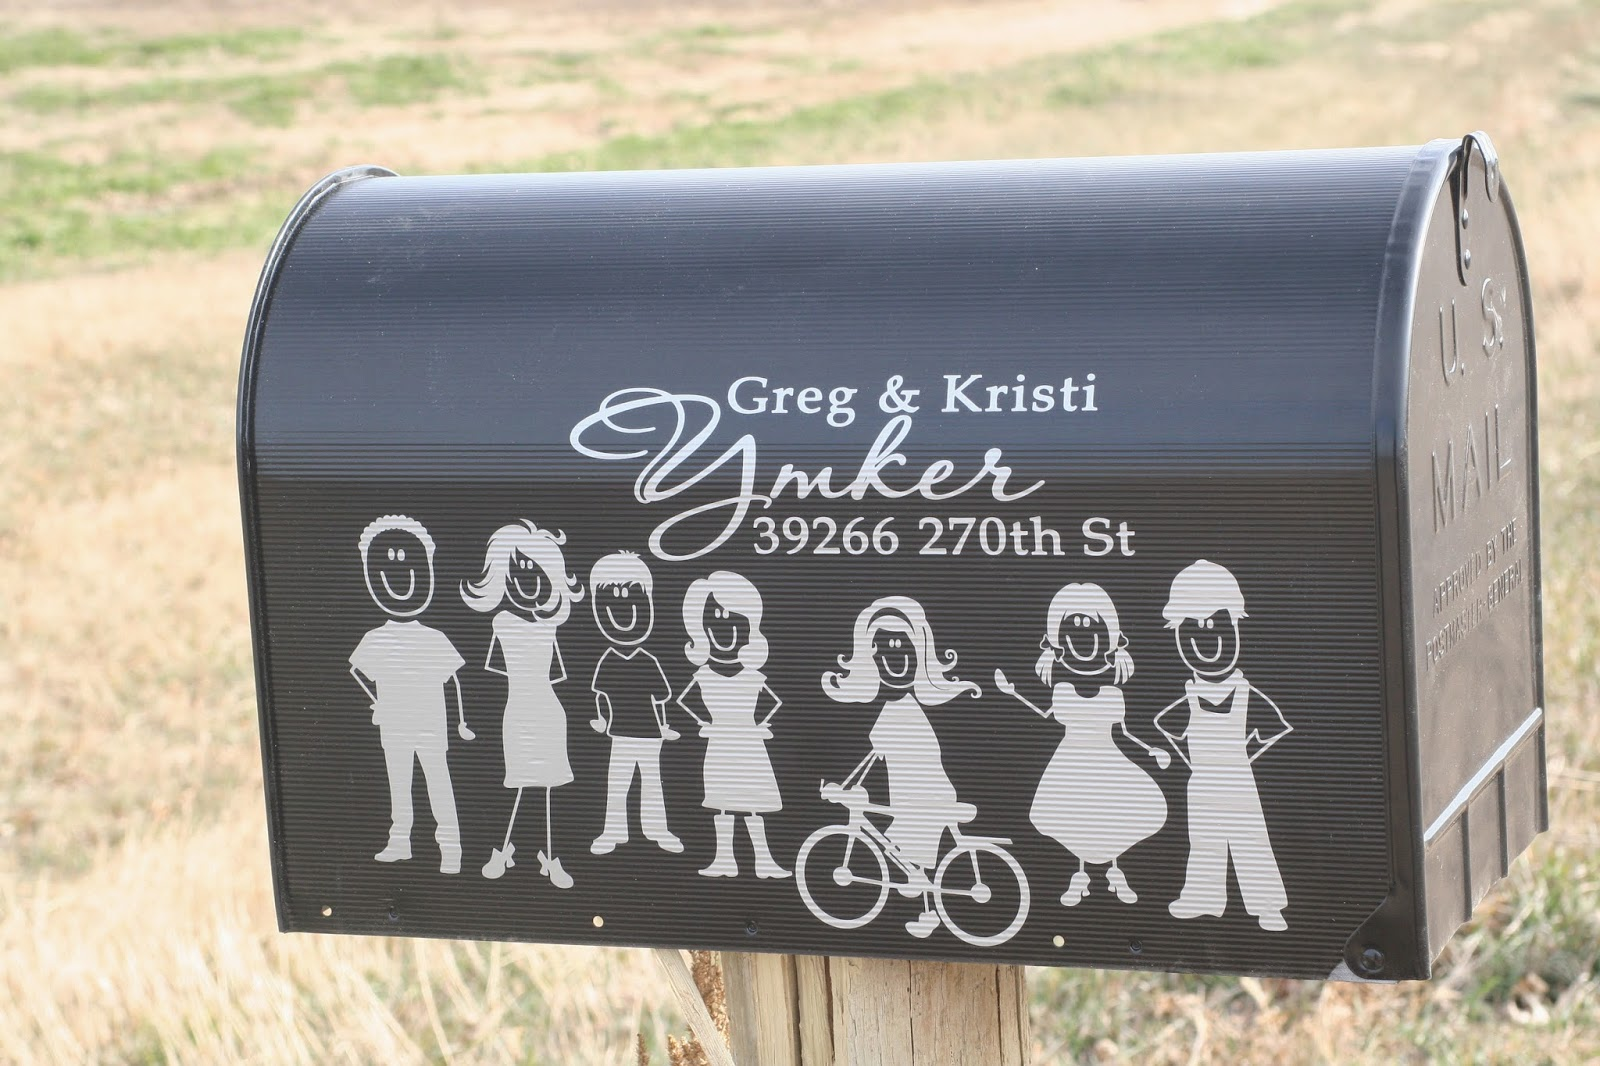 All About Wall Decals For The Home Custom Mailbox Decals Say - Custom vinyl decals for mailbox